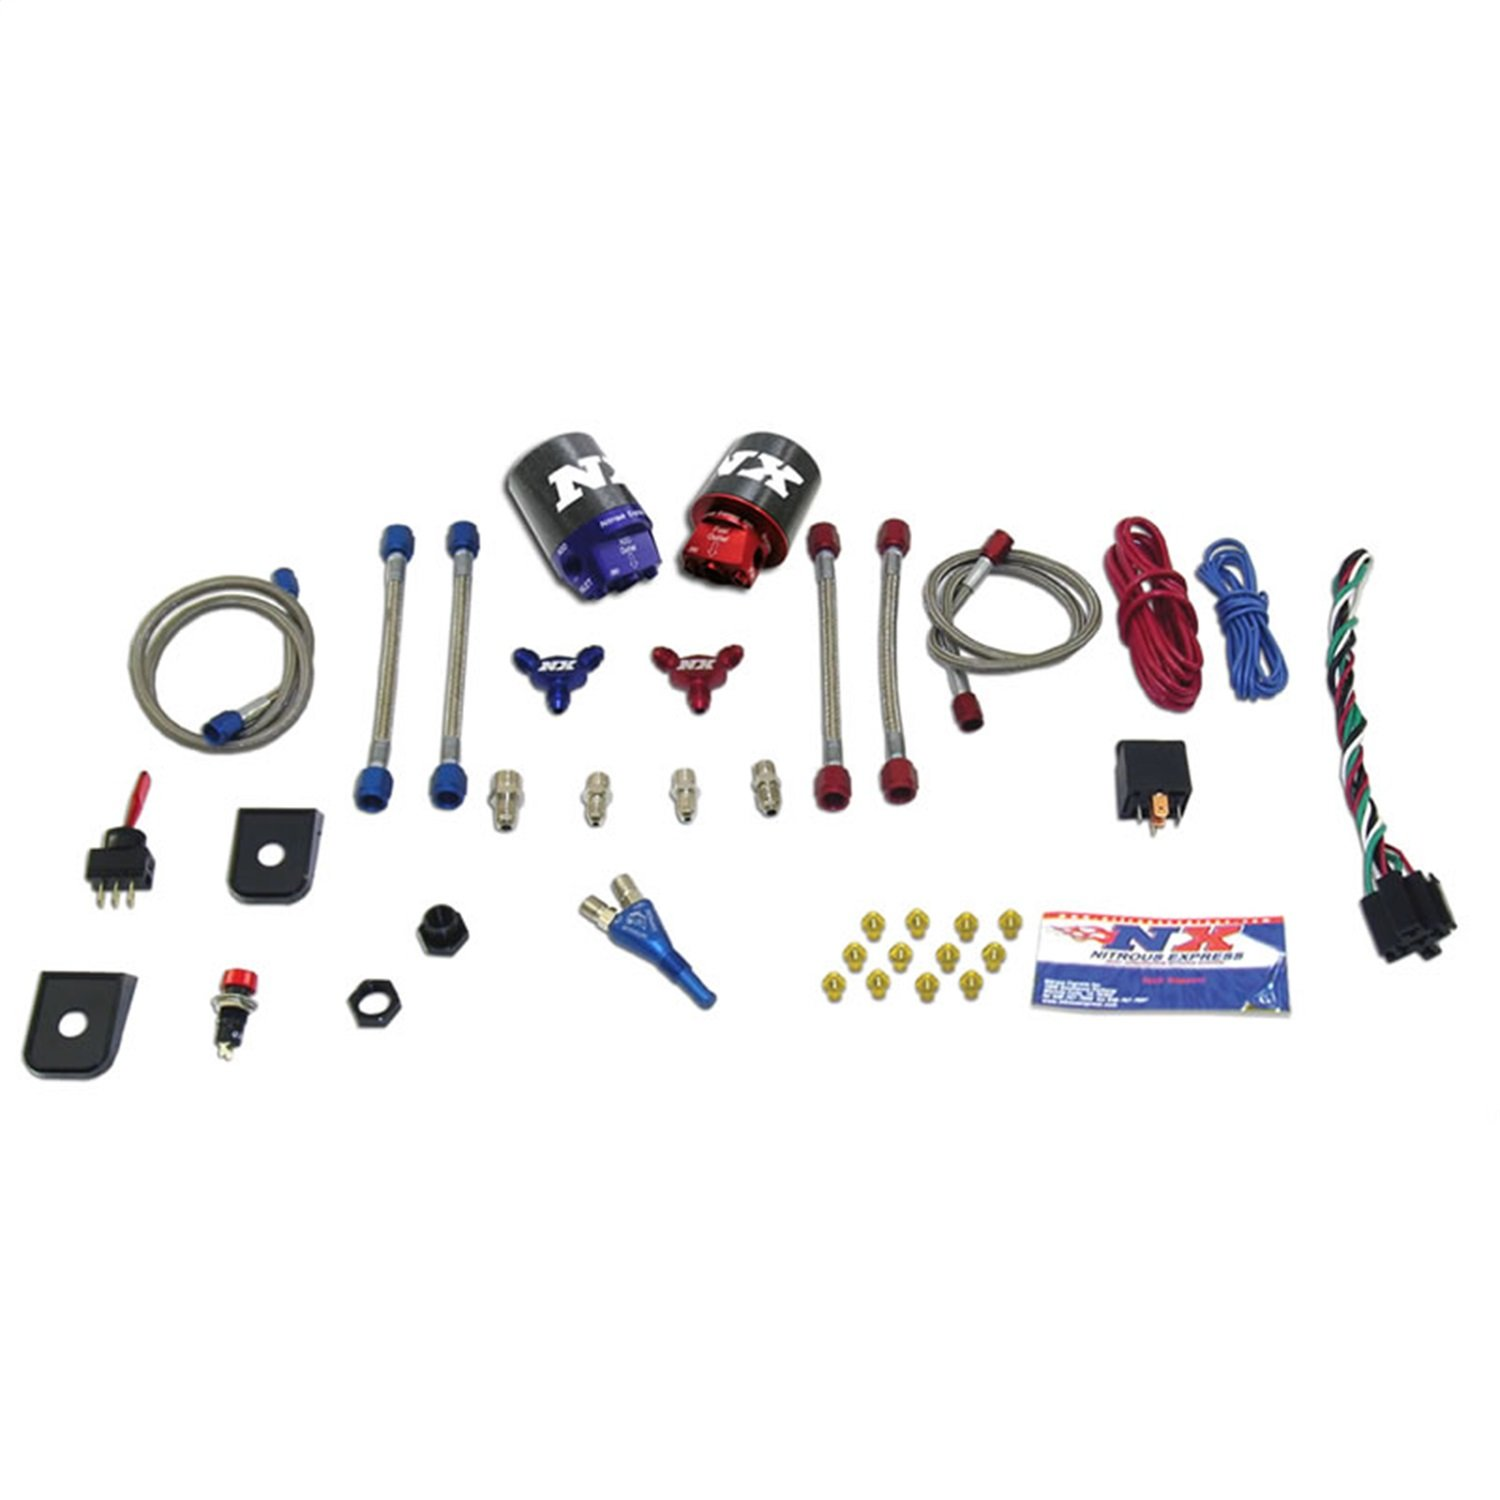 Nitrous Express NXEFI-DS Single Nozzle Stage 1 System to Dual Stage Convert